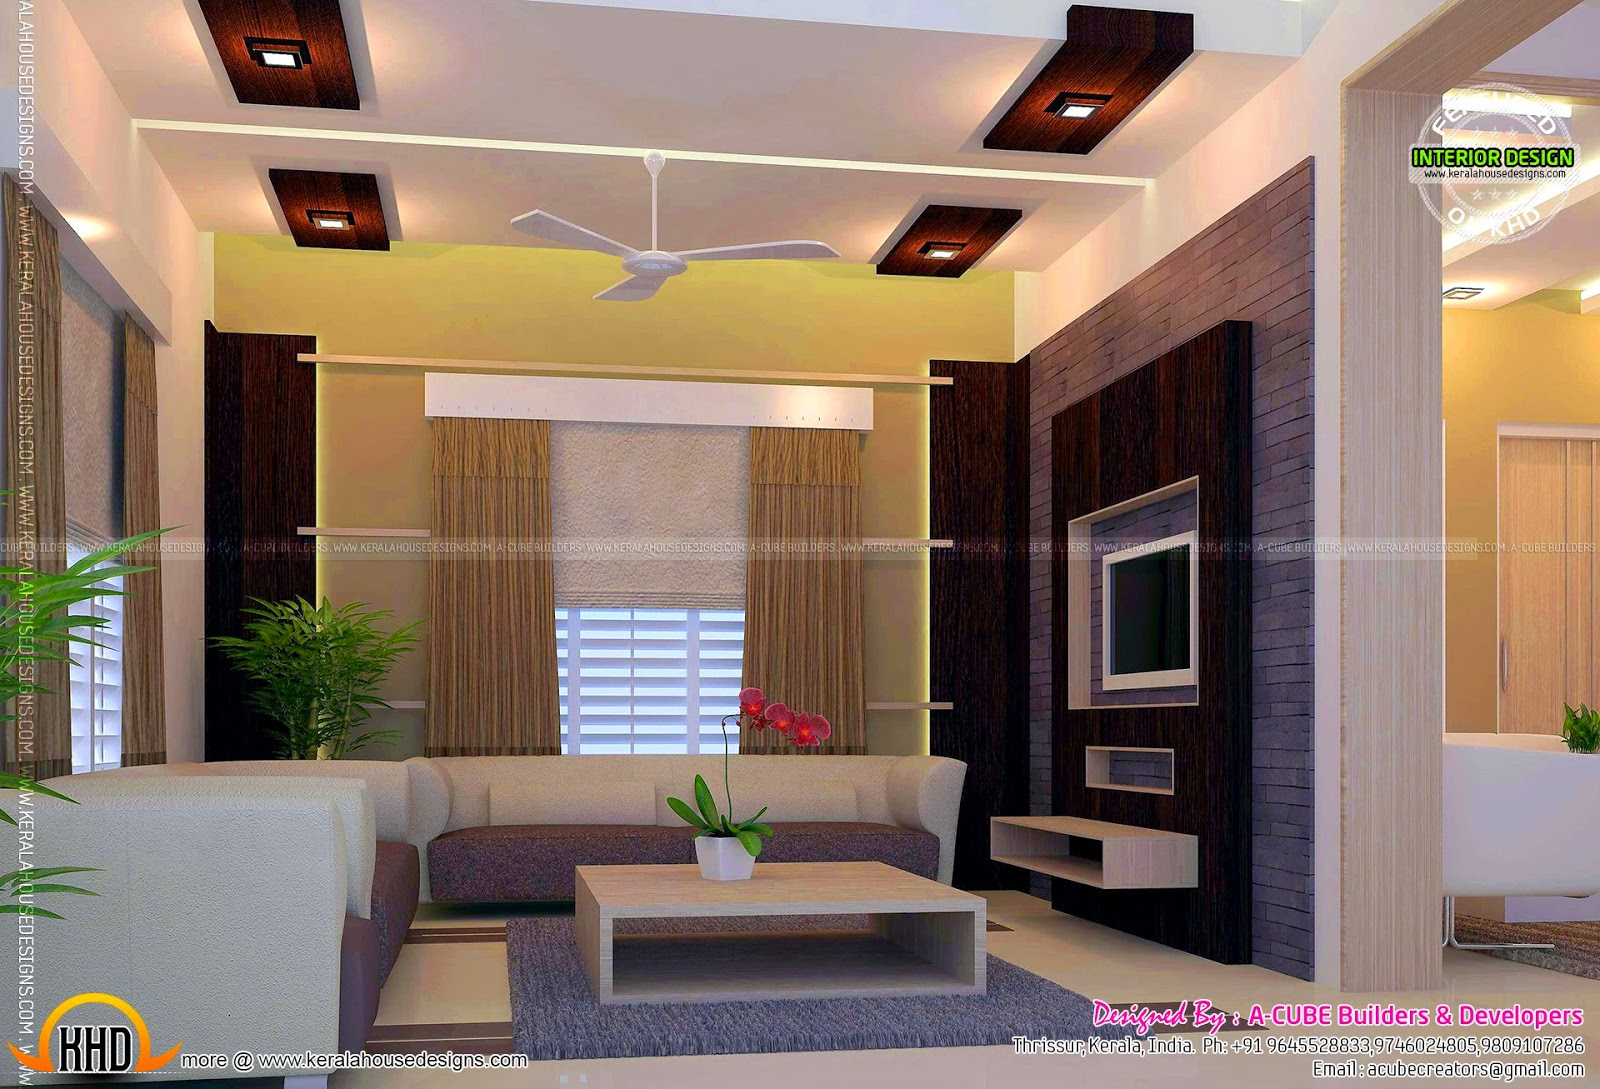 Beau Kerala Interior Design Ideas